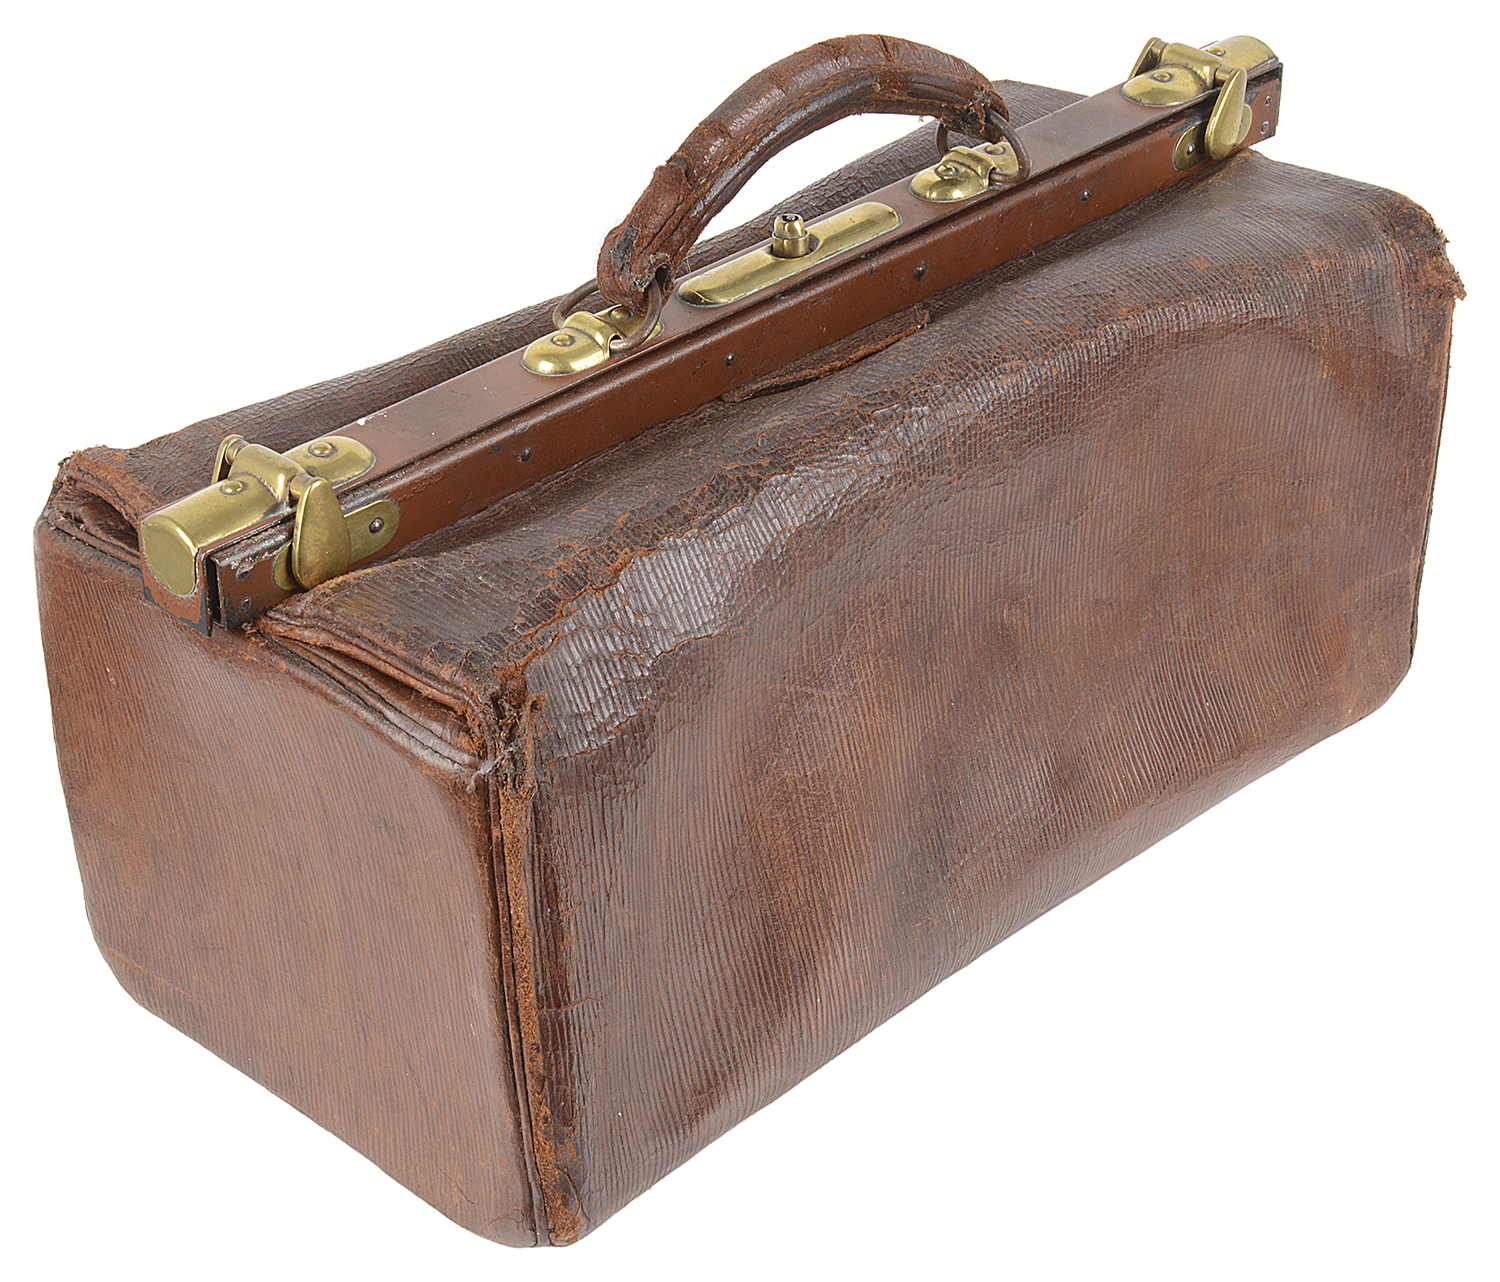 Lot 7 - An early 20th century brown leather Gladstone bag